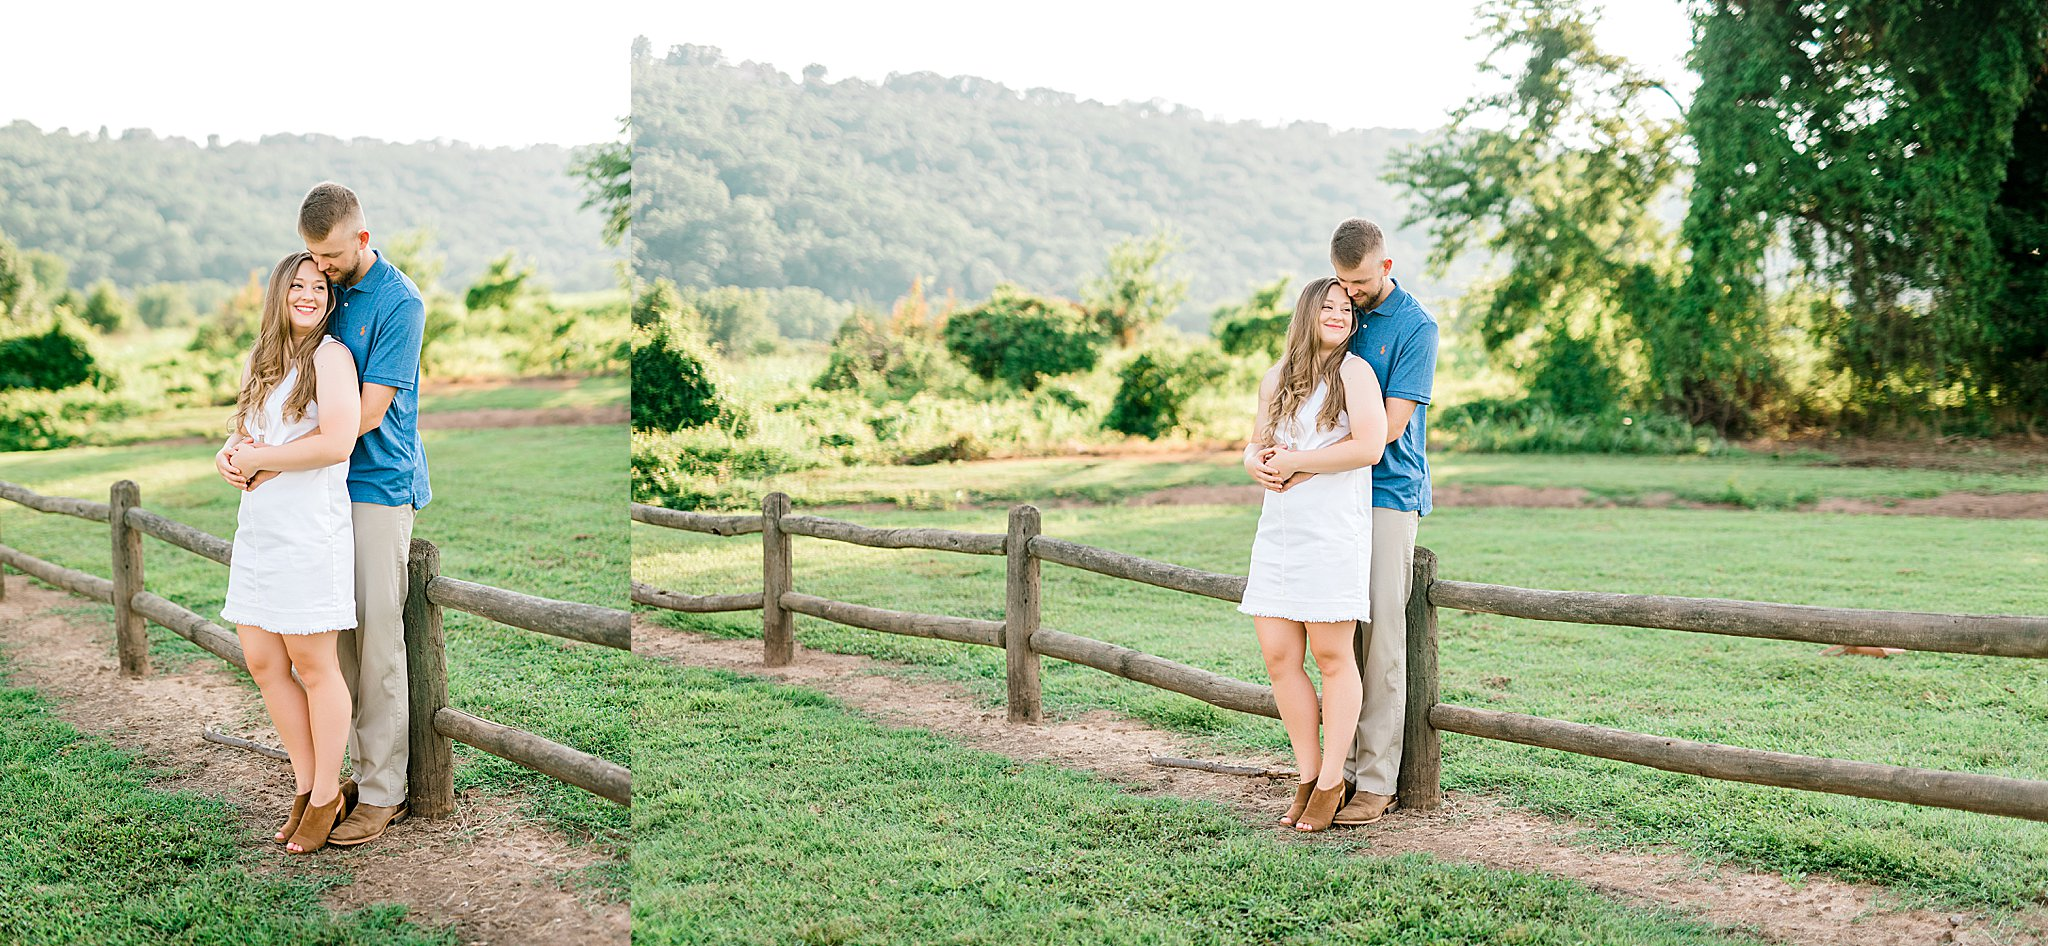 LittleRockWeddingPhotographer_1406.jpg